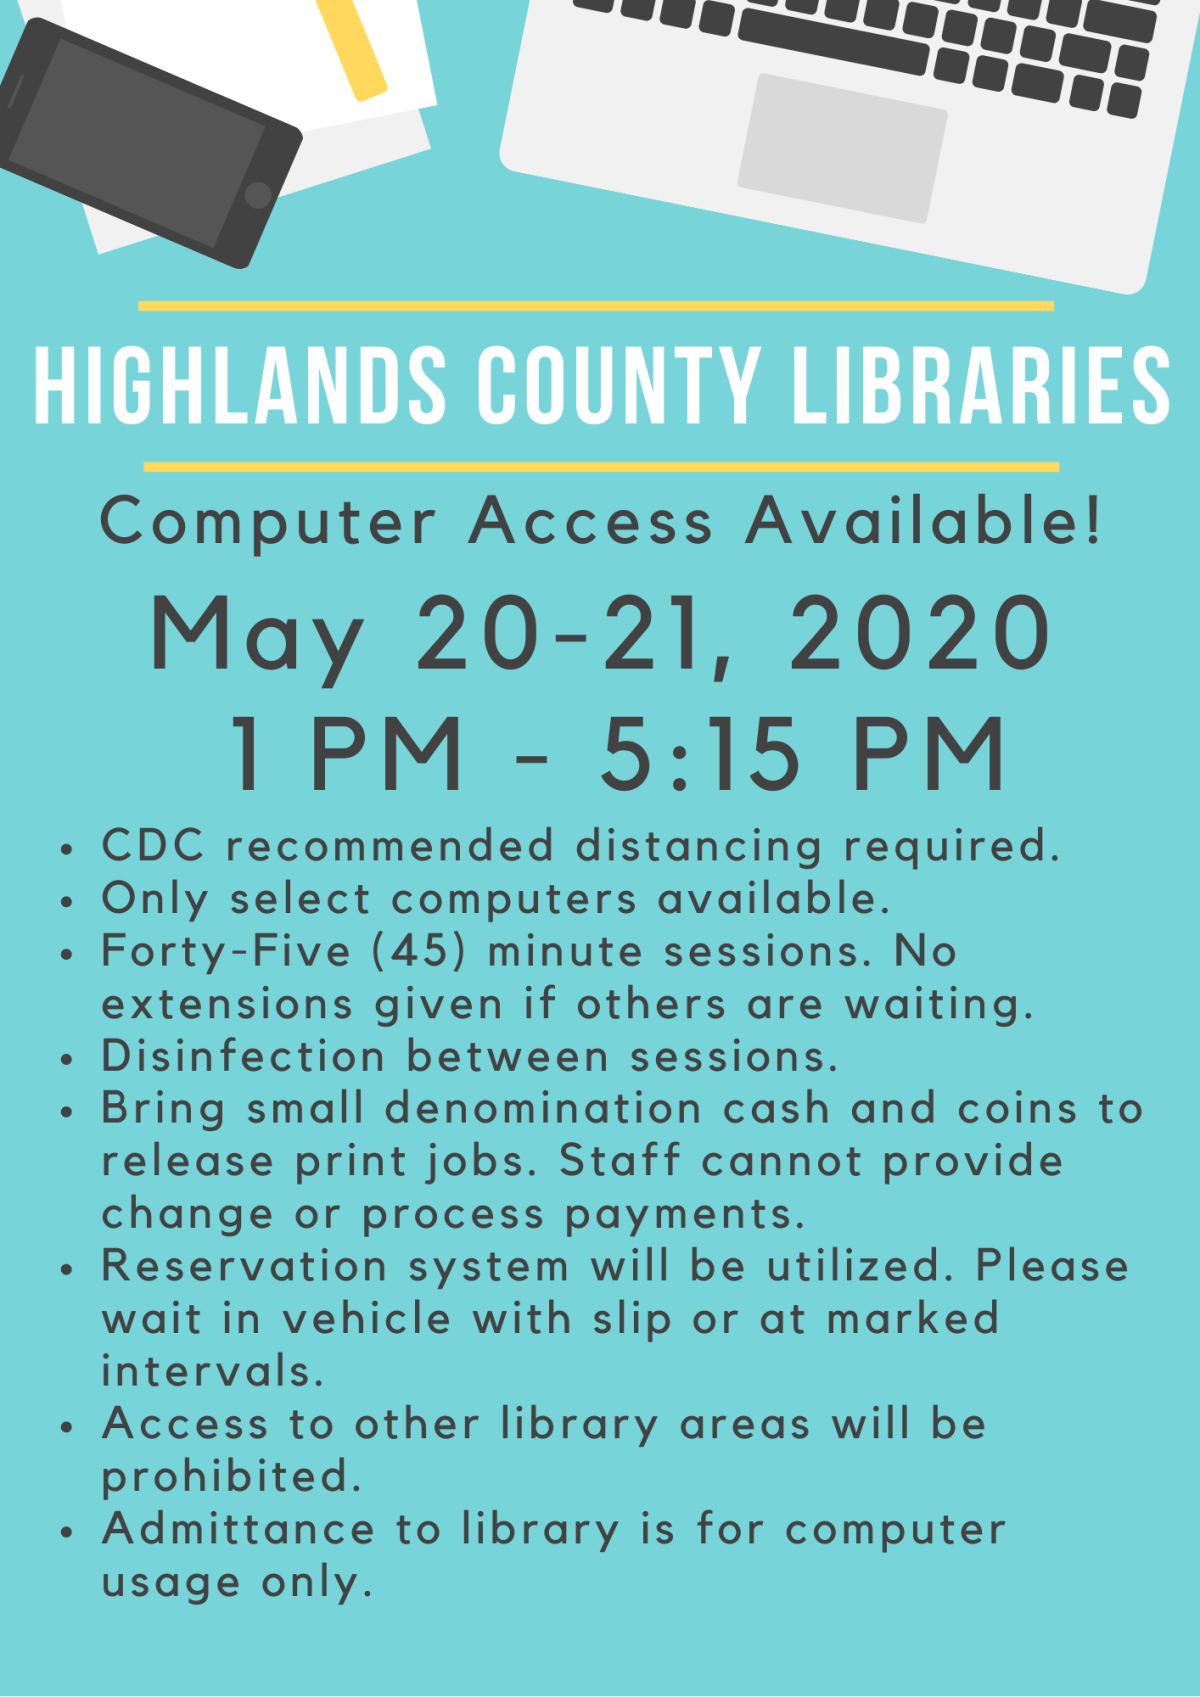 Highlands County Public Libraries will be offering computer usage on May 20-21, 2020 from 1:00 PM to 5:15 PM. Computers will automatically log off at 5:15 PM. Sessions will be limited to 45 minutes. Social distancing lines will be marked on the sidewalk if you choose to wait there, and if not please wait in your vehicle with a reservation slip. All other areas of the libraries will be closed and not available for use or access. Computer service available at Avon Park, Sebring, and Lake Placid Libraries. Please call 863-402-6716 for questions or assistance.